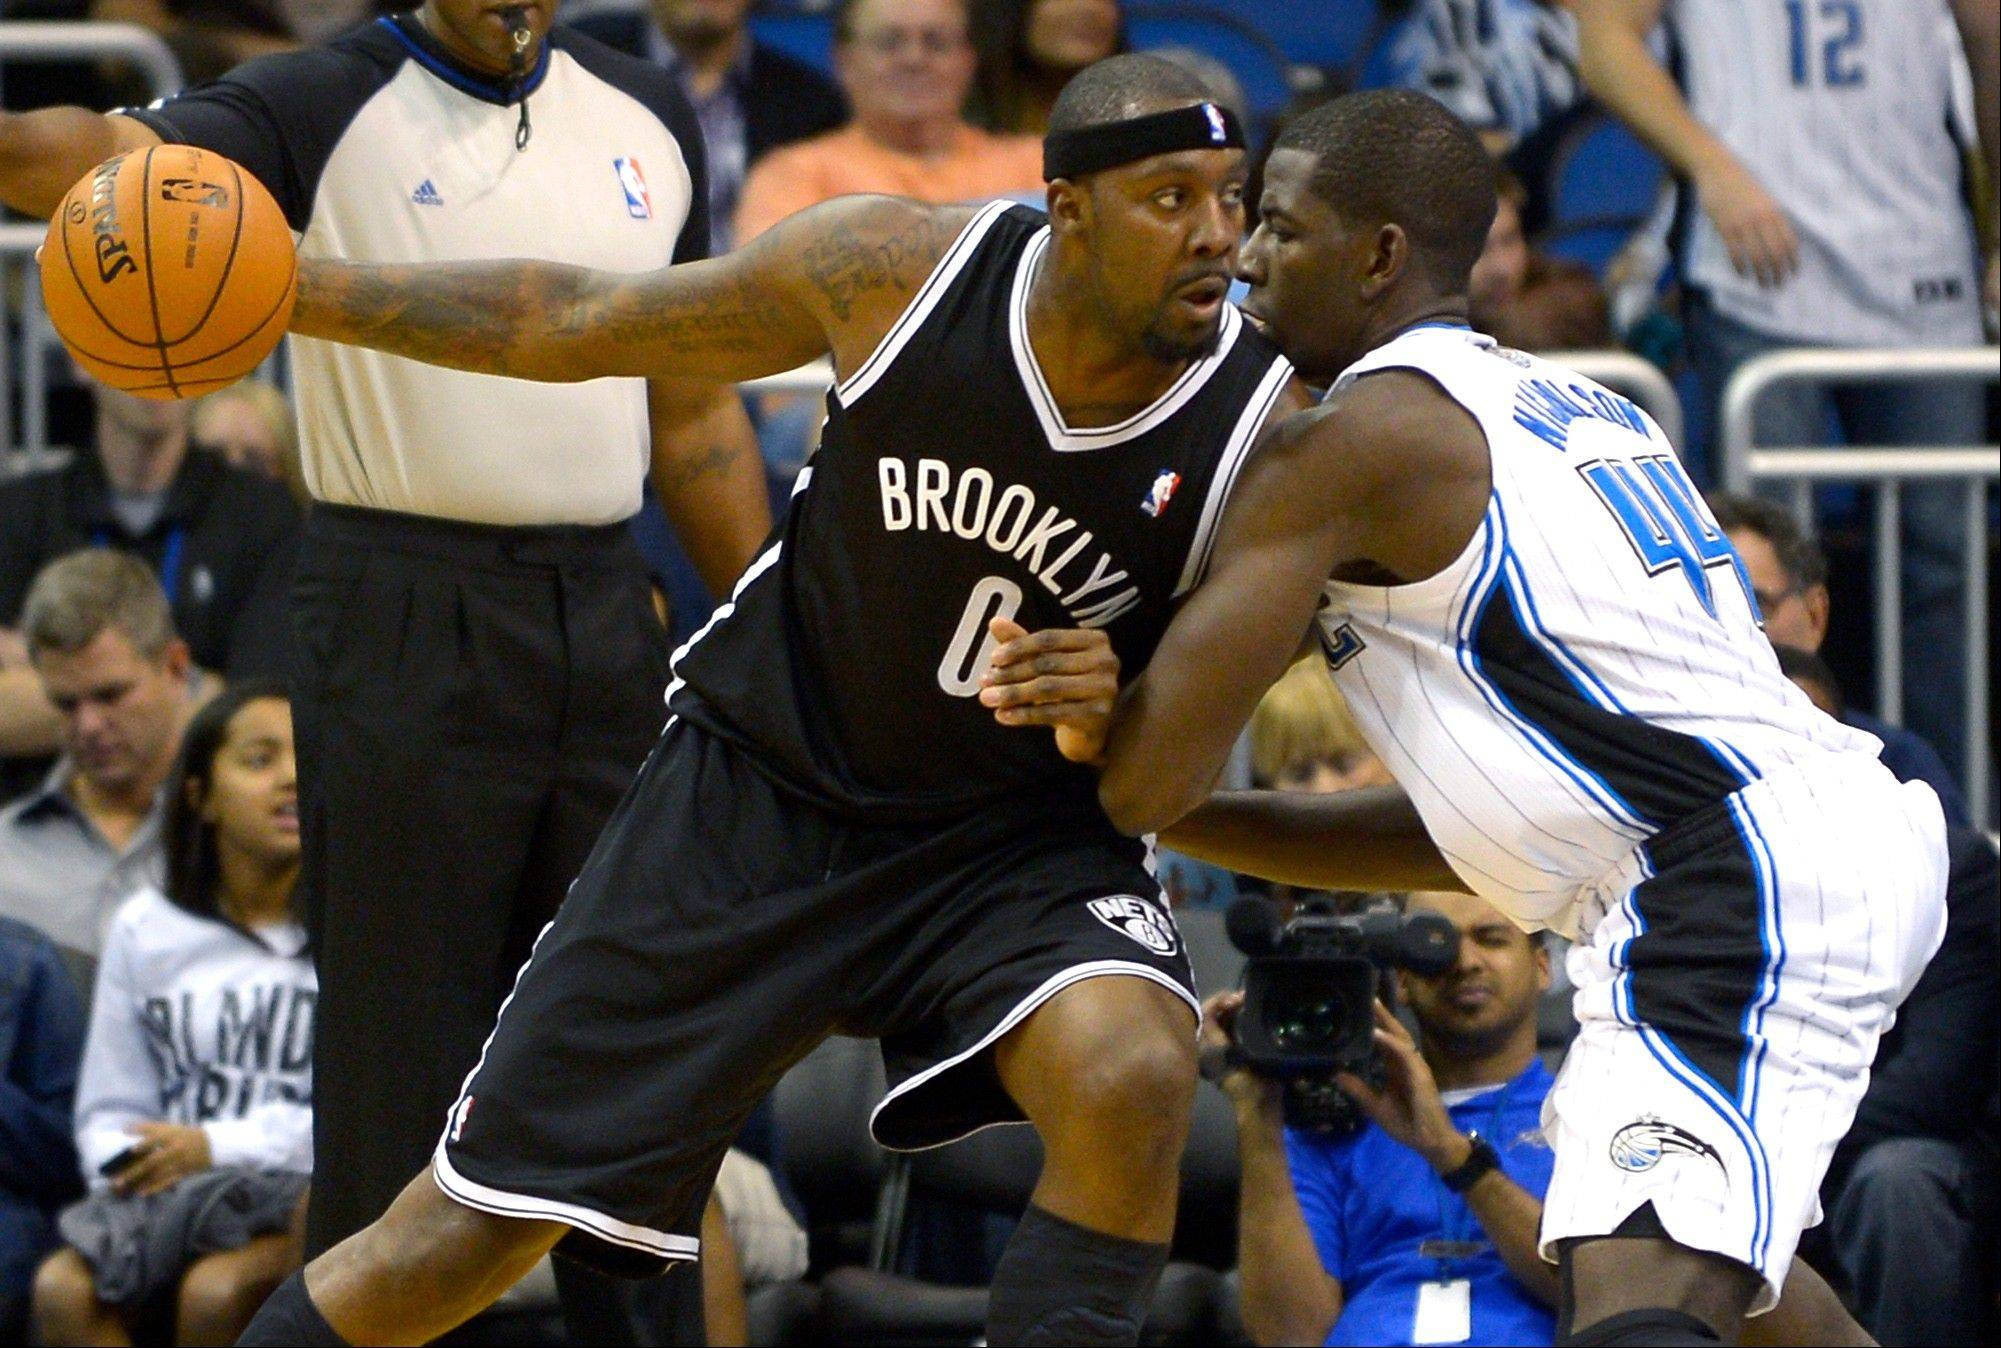 Brooklyn Nets center Andray Blatche drives to the basket against Orlando Magic forward Andrew Nicholson Friday during the second half in Orlando, Fla. The Nets won 107-68.